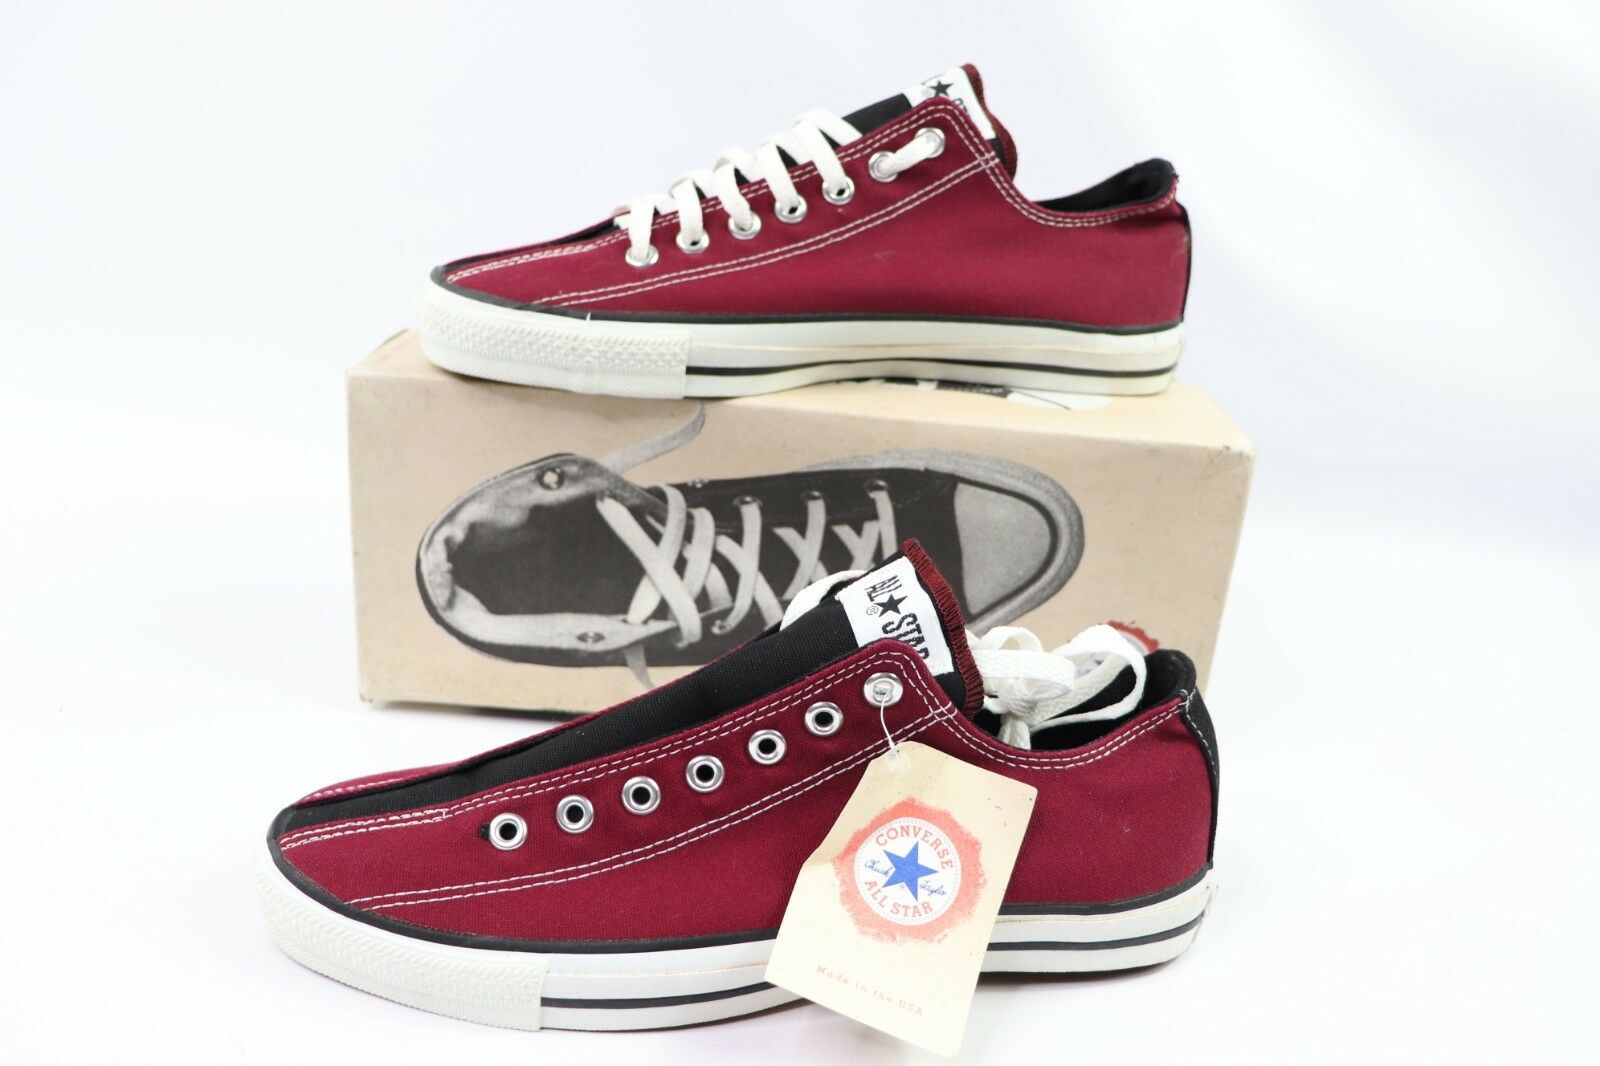 Vintage 90s New Converse All Star Low Mens 10 Chuck Taylor Bowling shoes Red USA